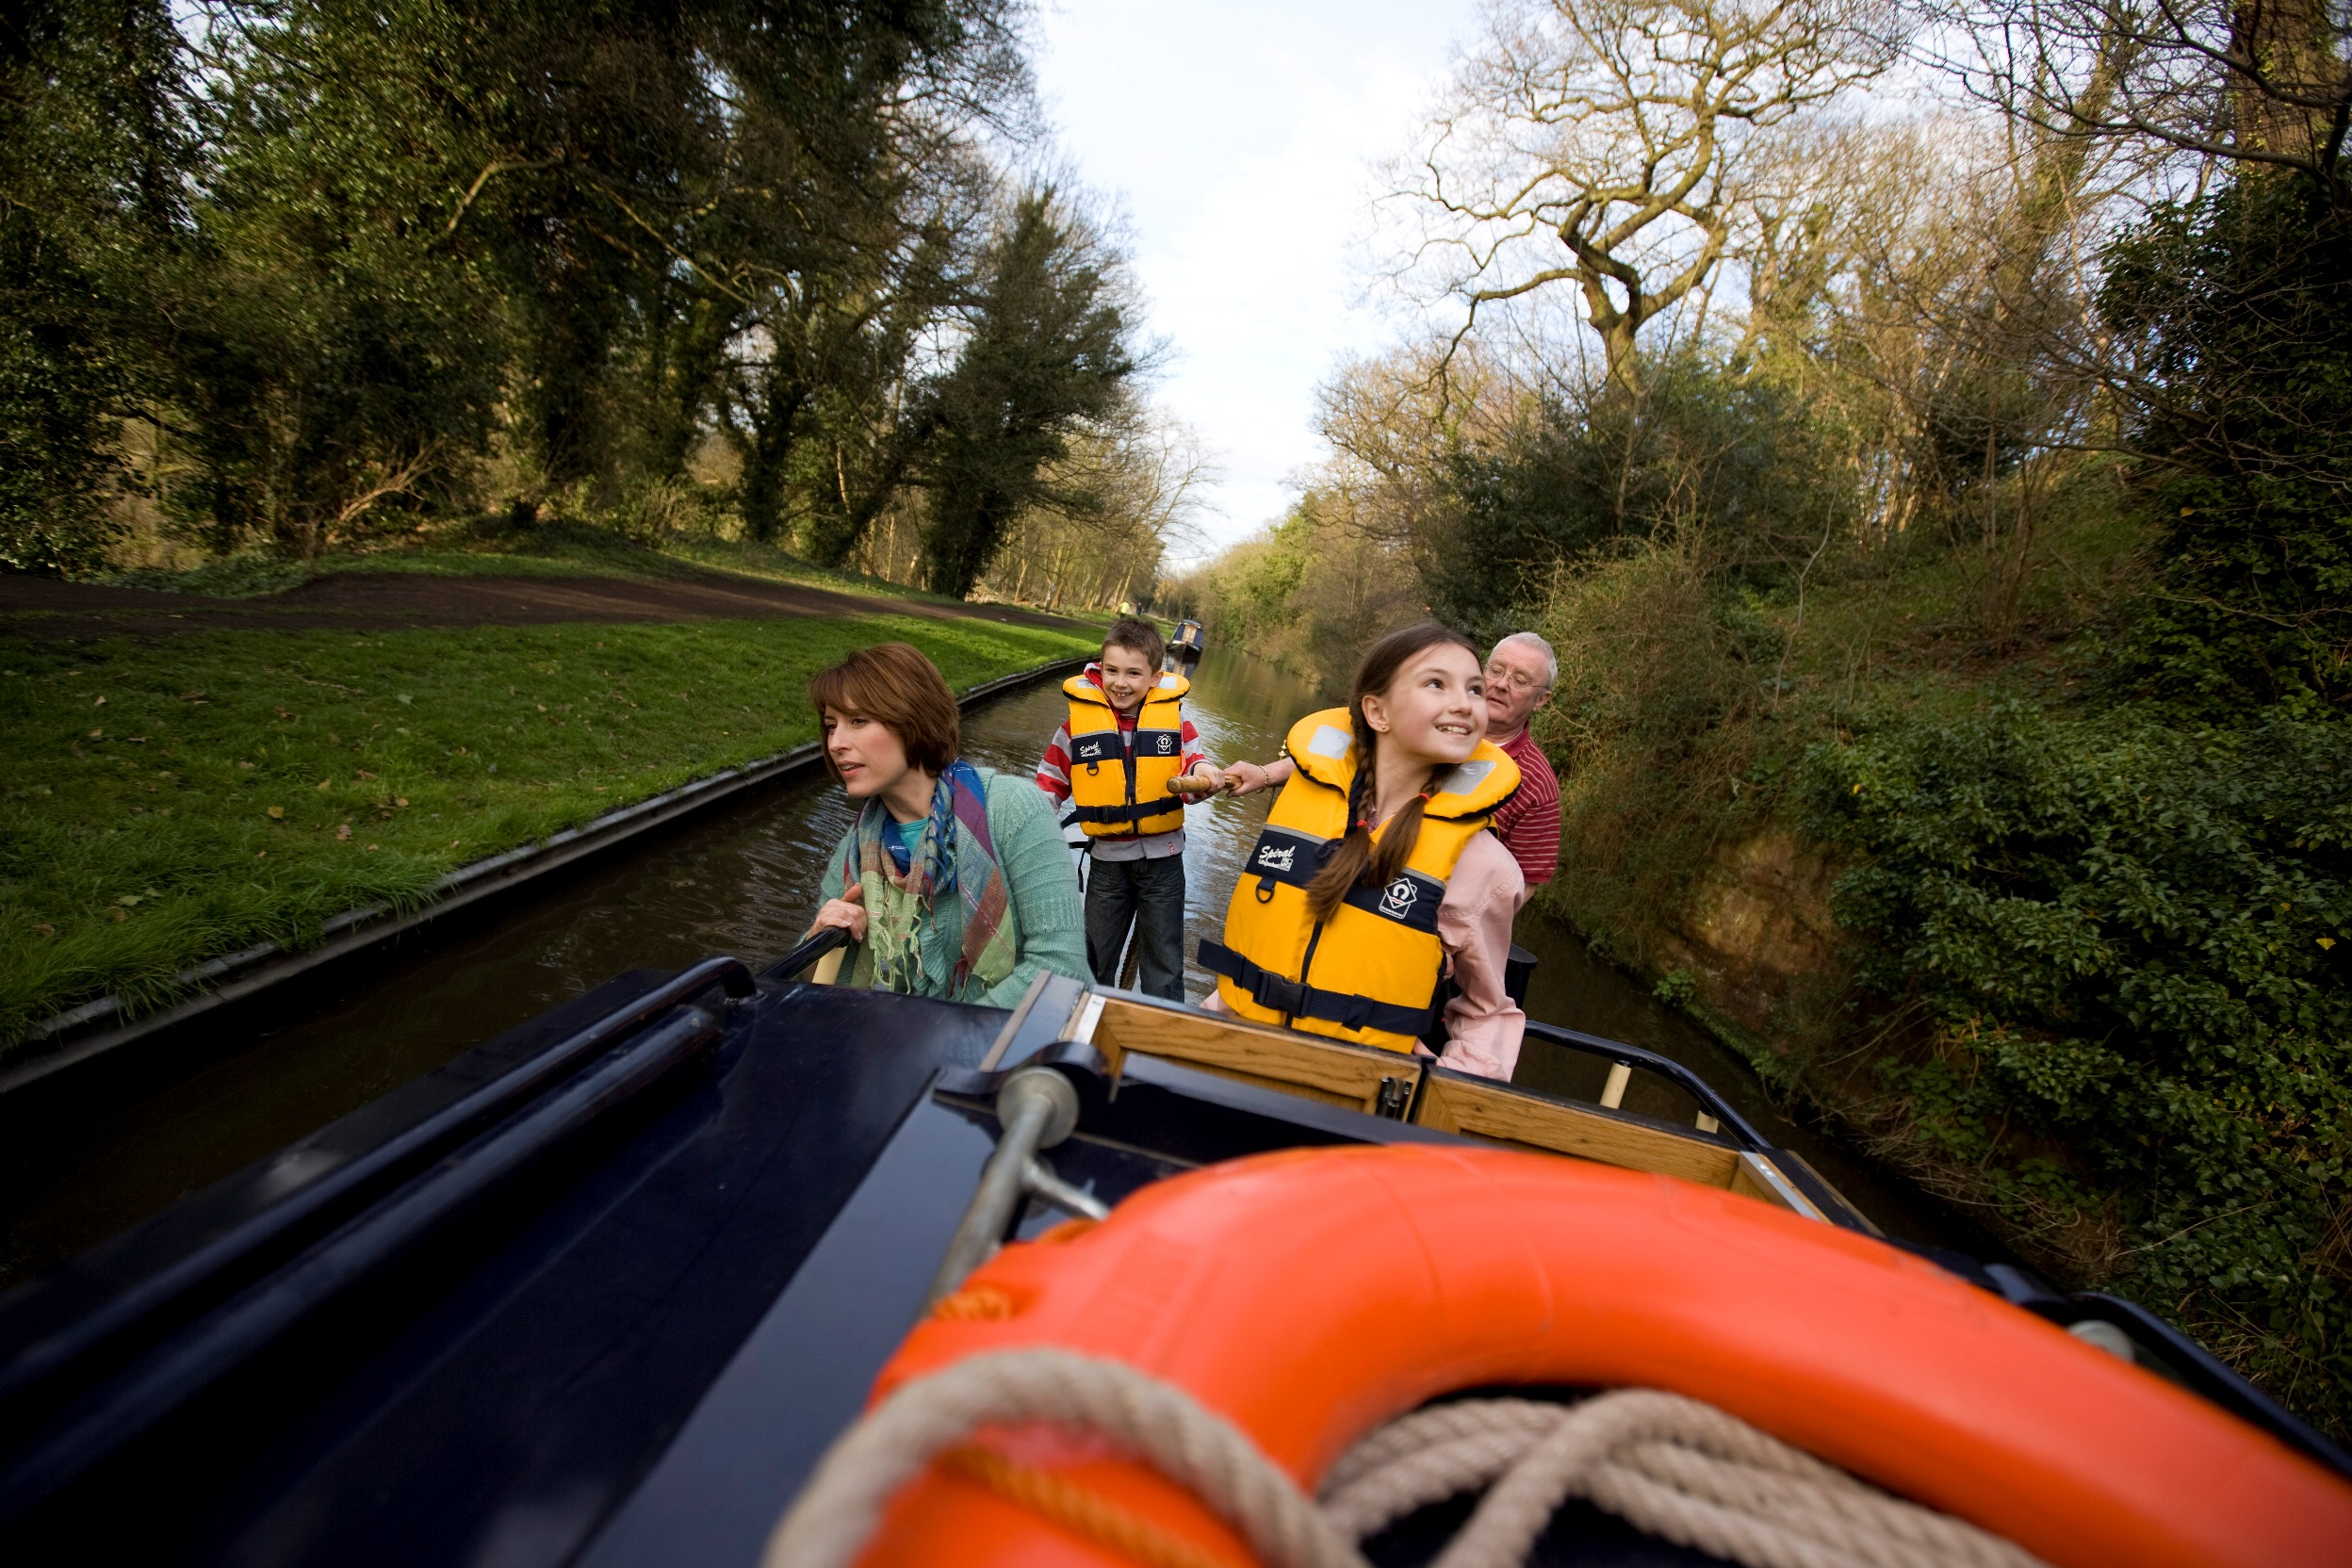 Try canal boating for free at Drifters National Open Day Event